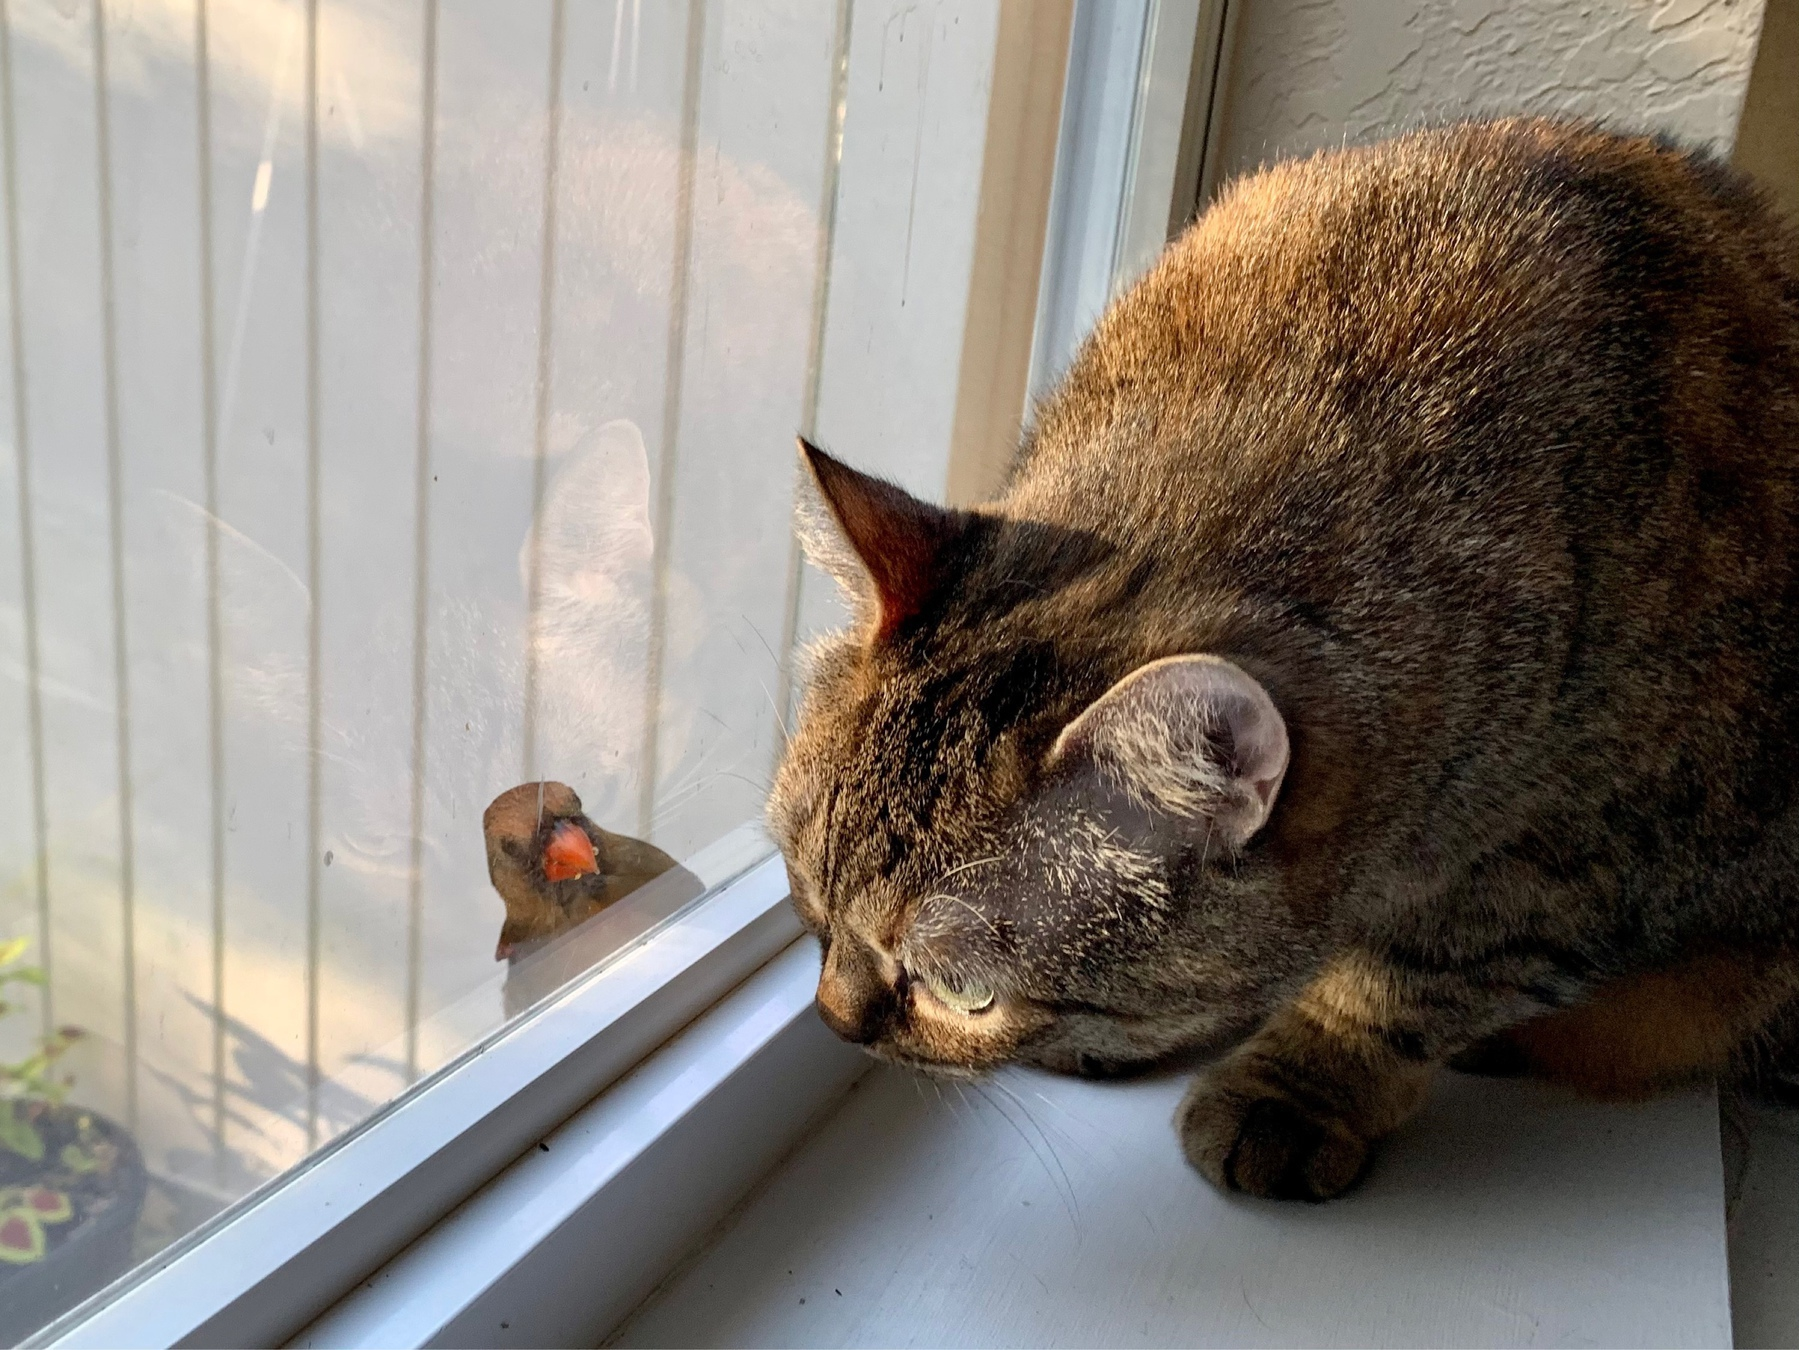 Cat looks at cardinal in window